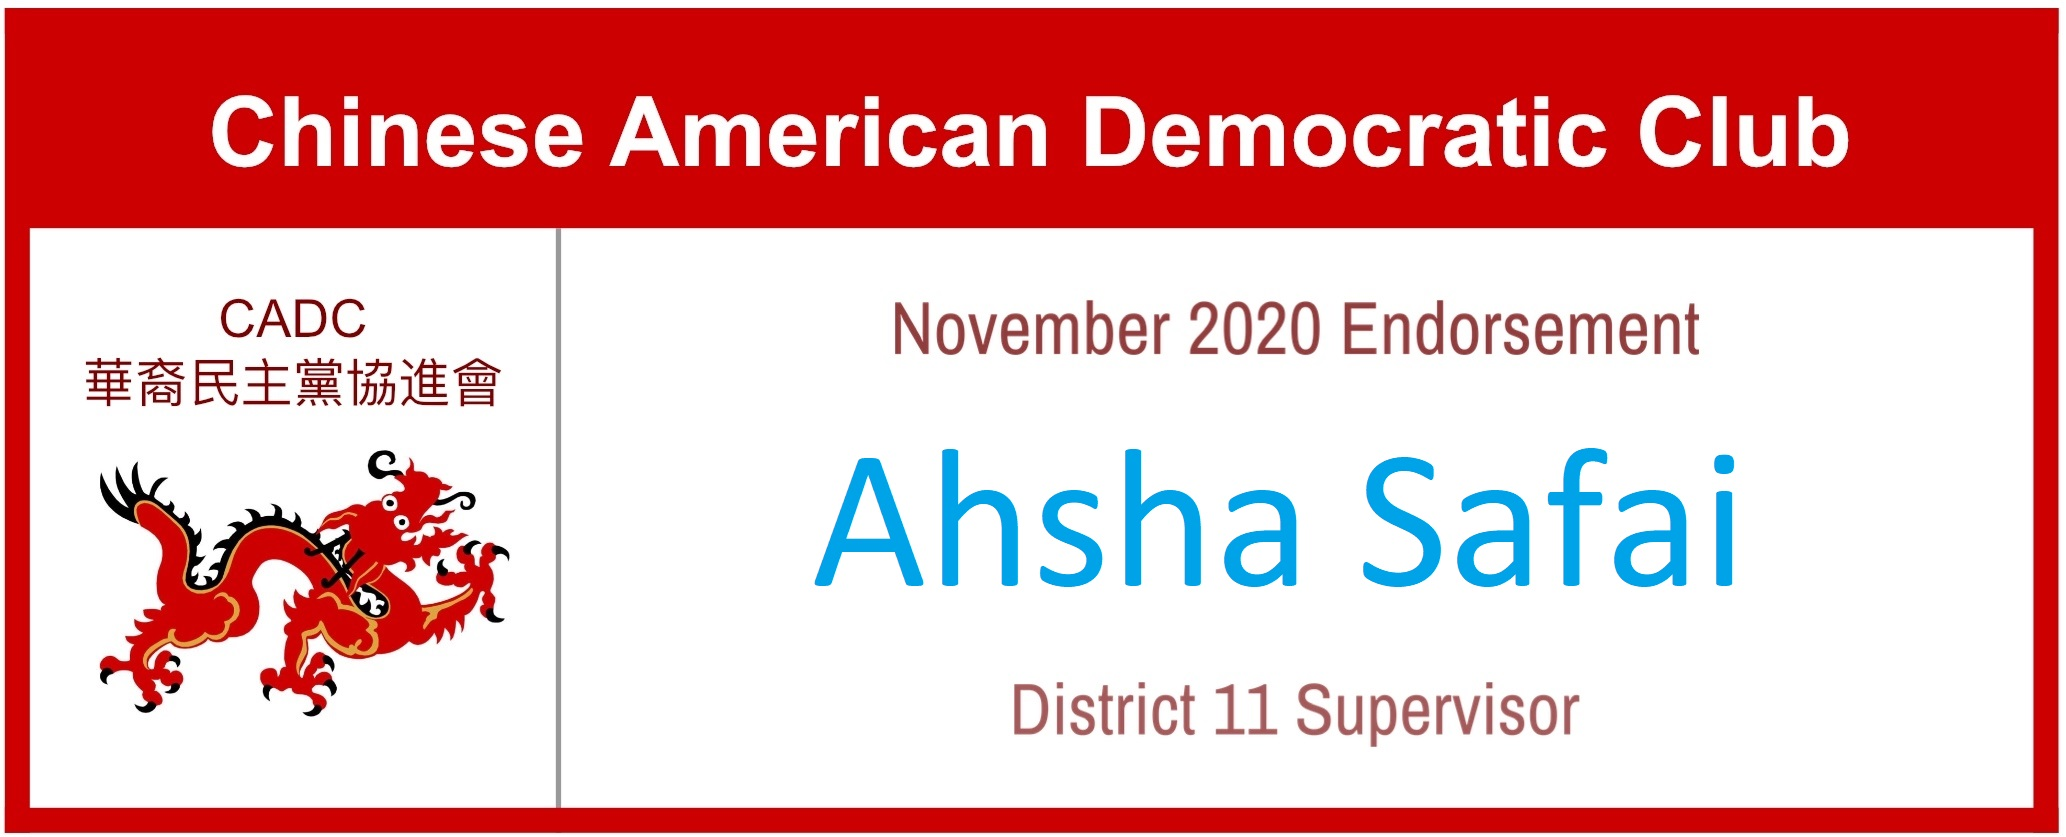 Ahsha Safai for District 11 Supervisor - CADC Sole Endorsement November 2020